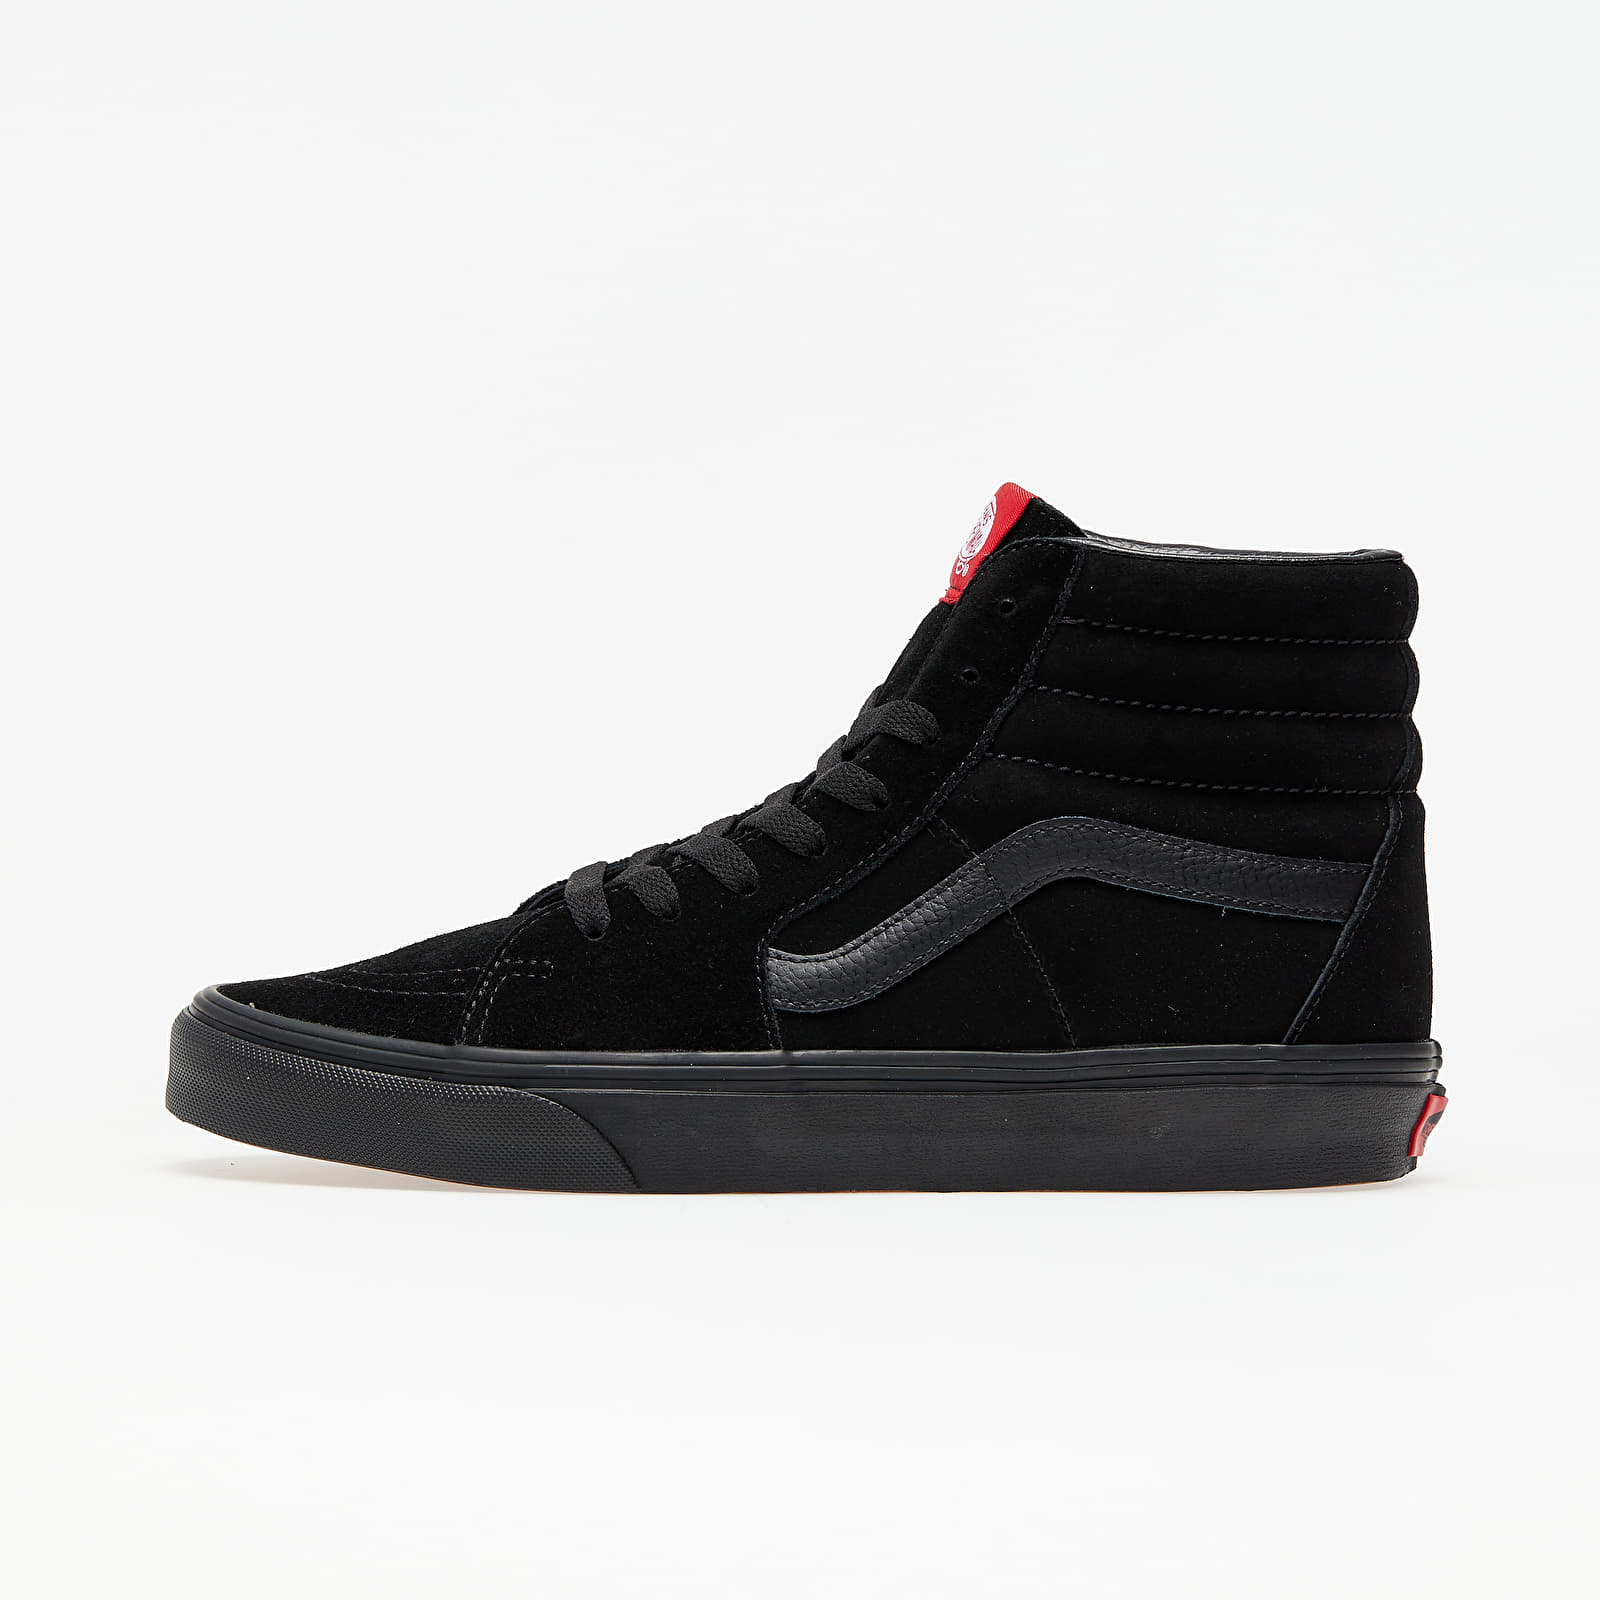 Men's shoes Vans Sk8-Hi Black/ Black Suede